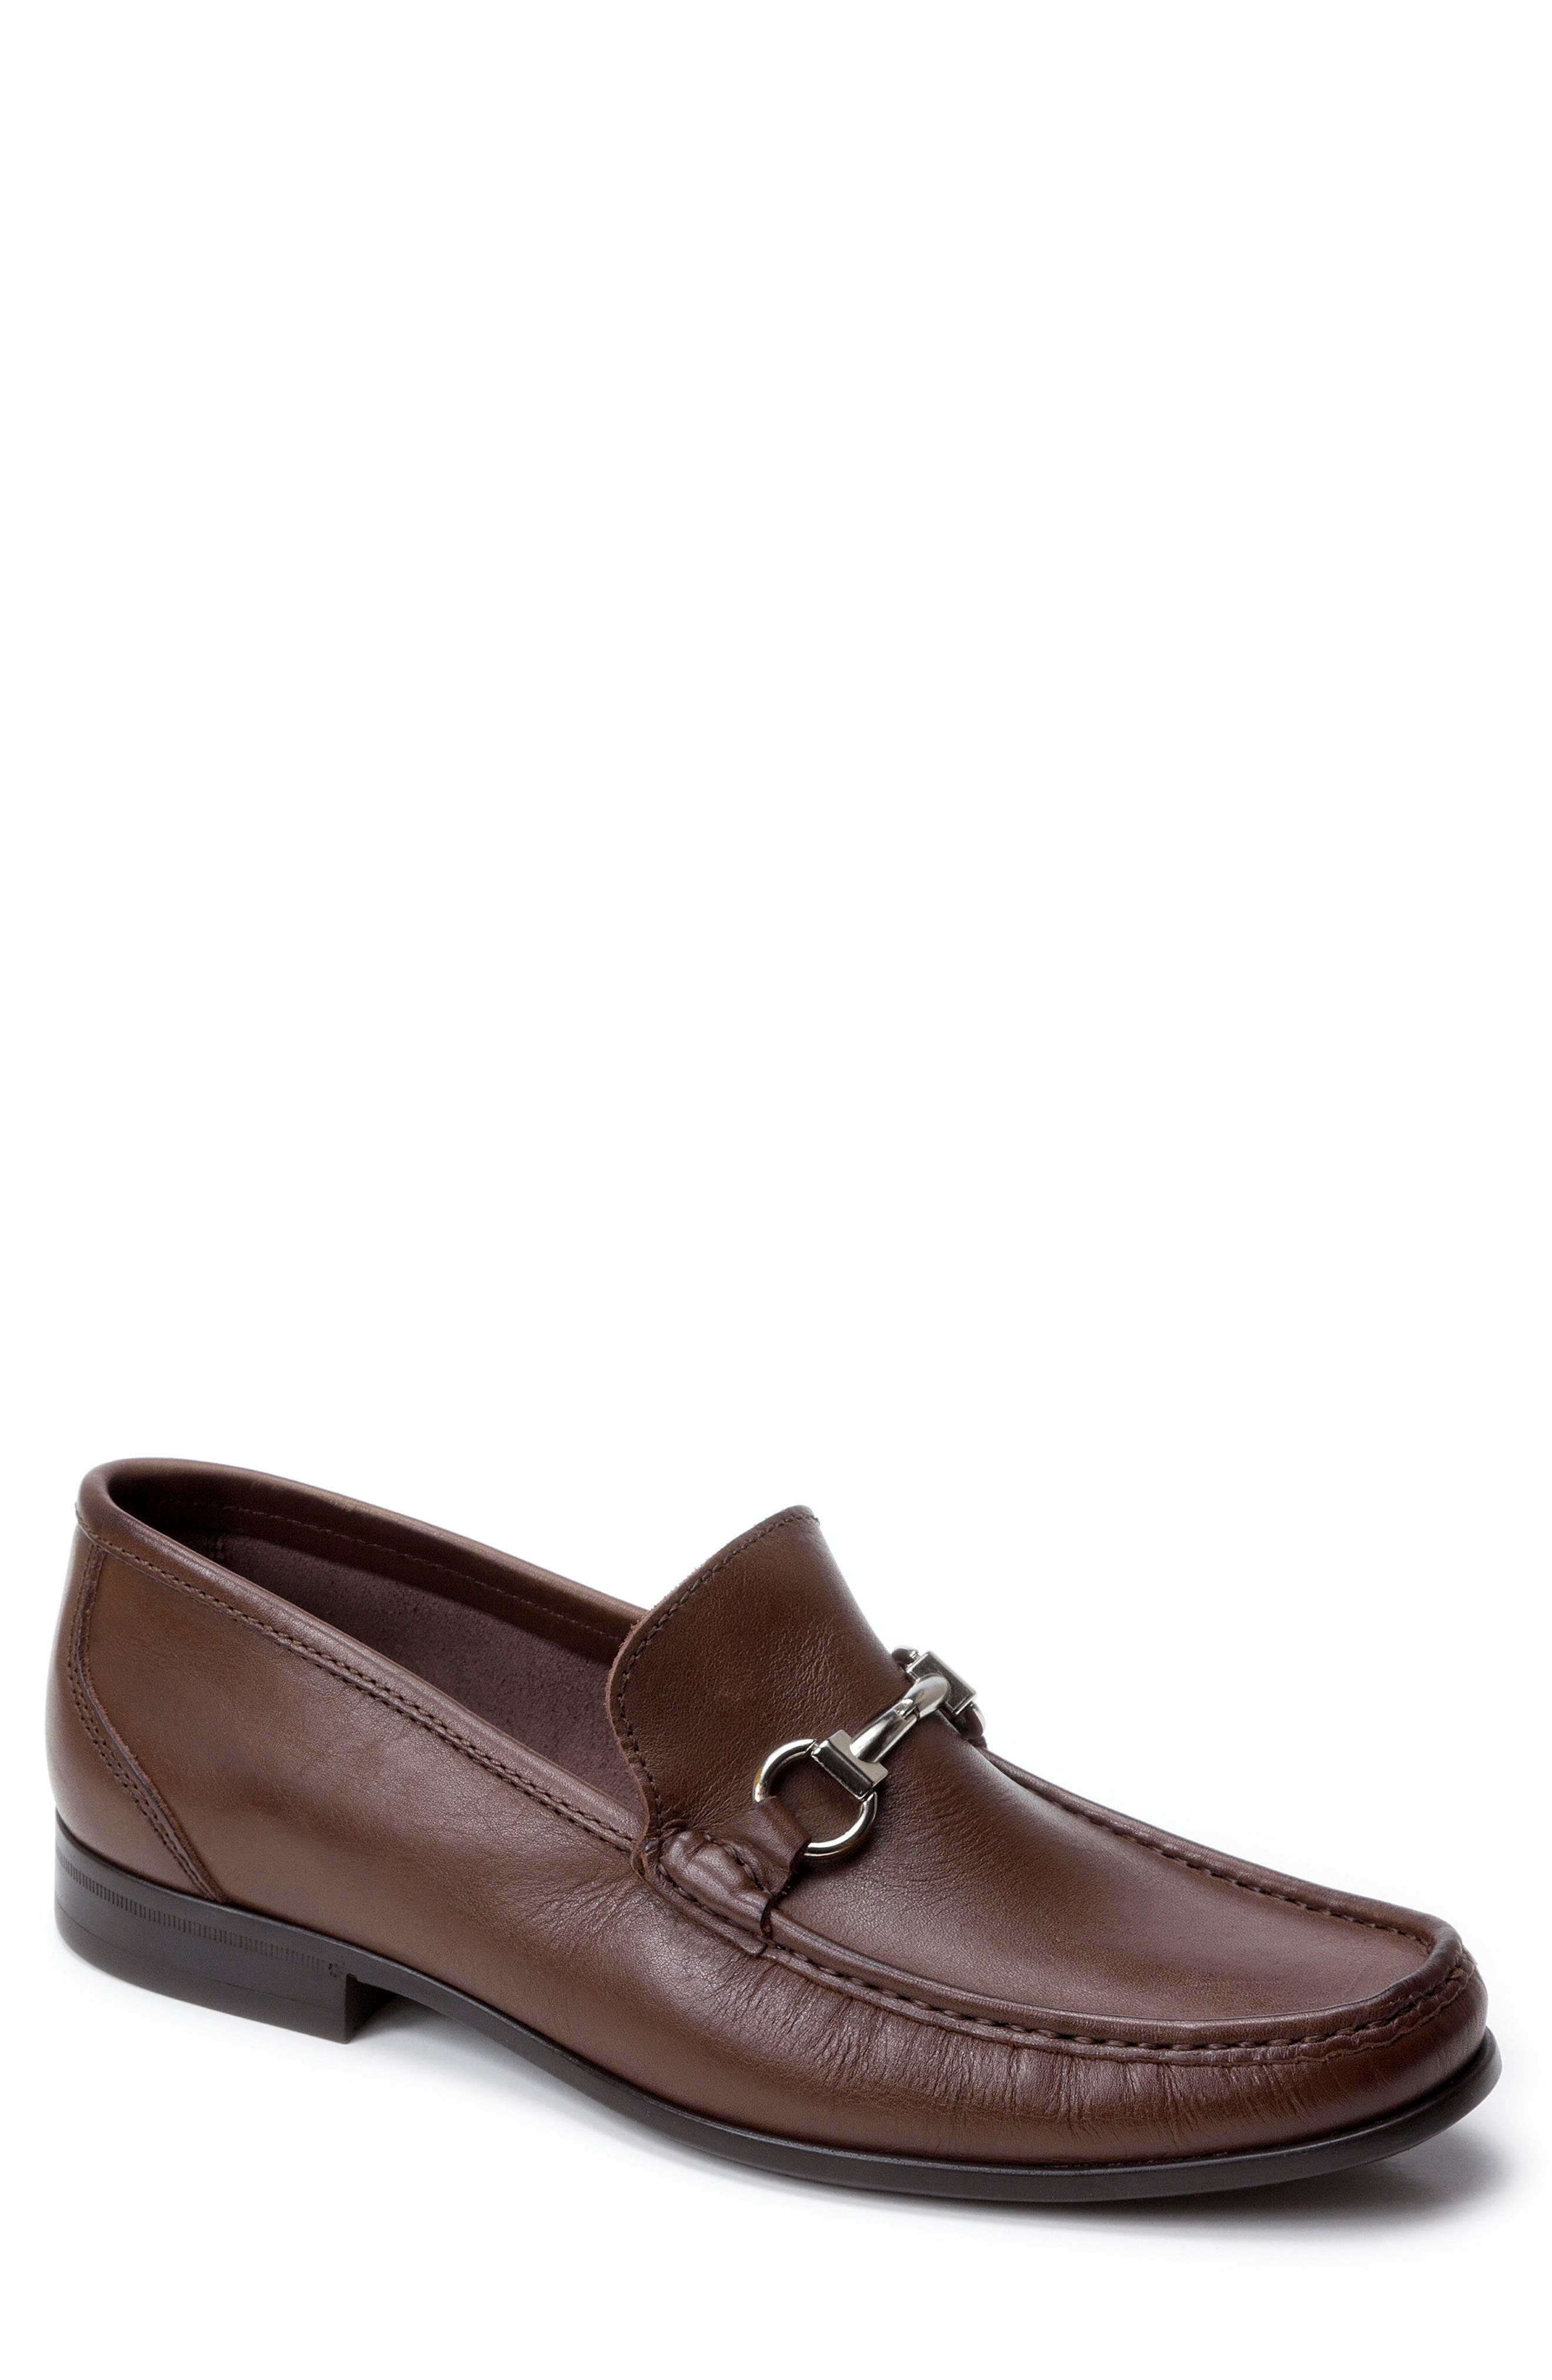 'Malibu' Suede Bit Loafer,                             Main thumbnail 1, color,                             Brown Leather